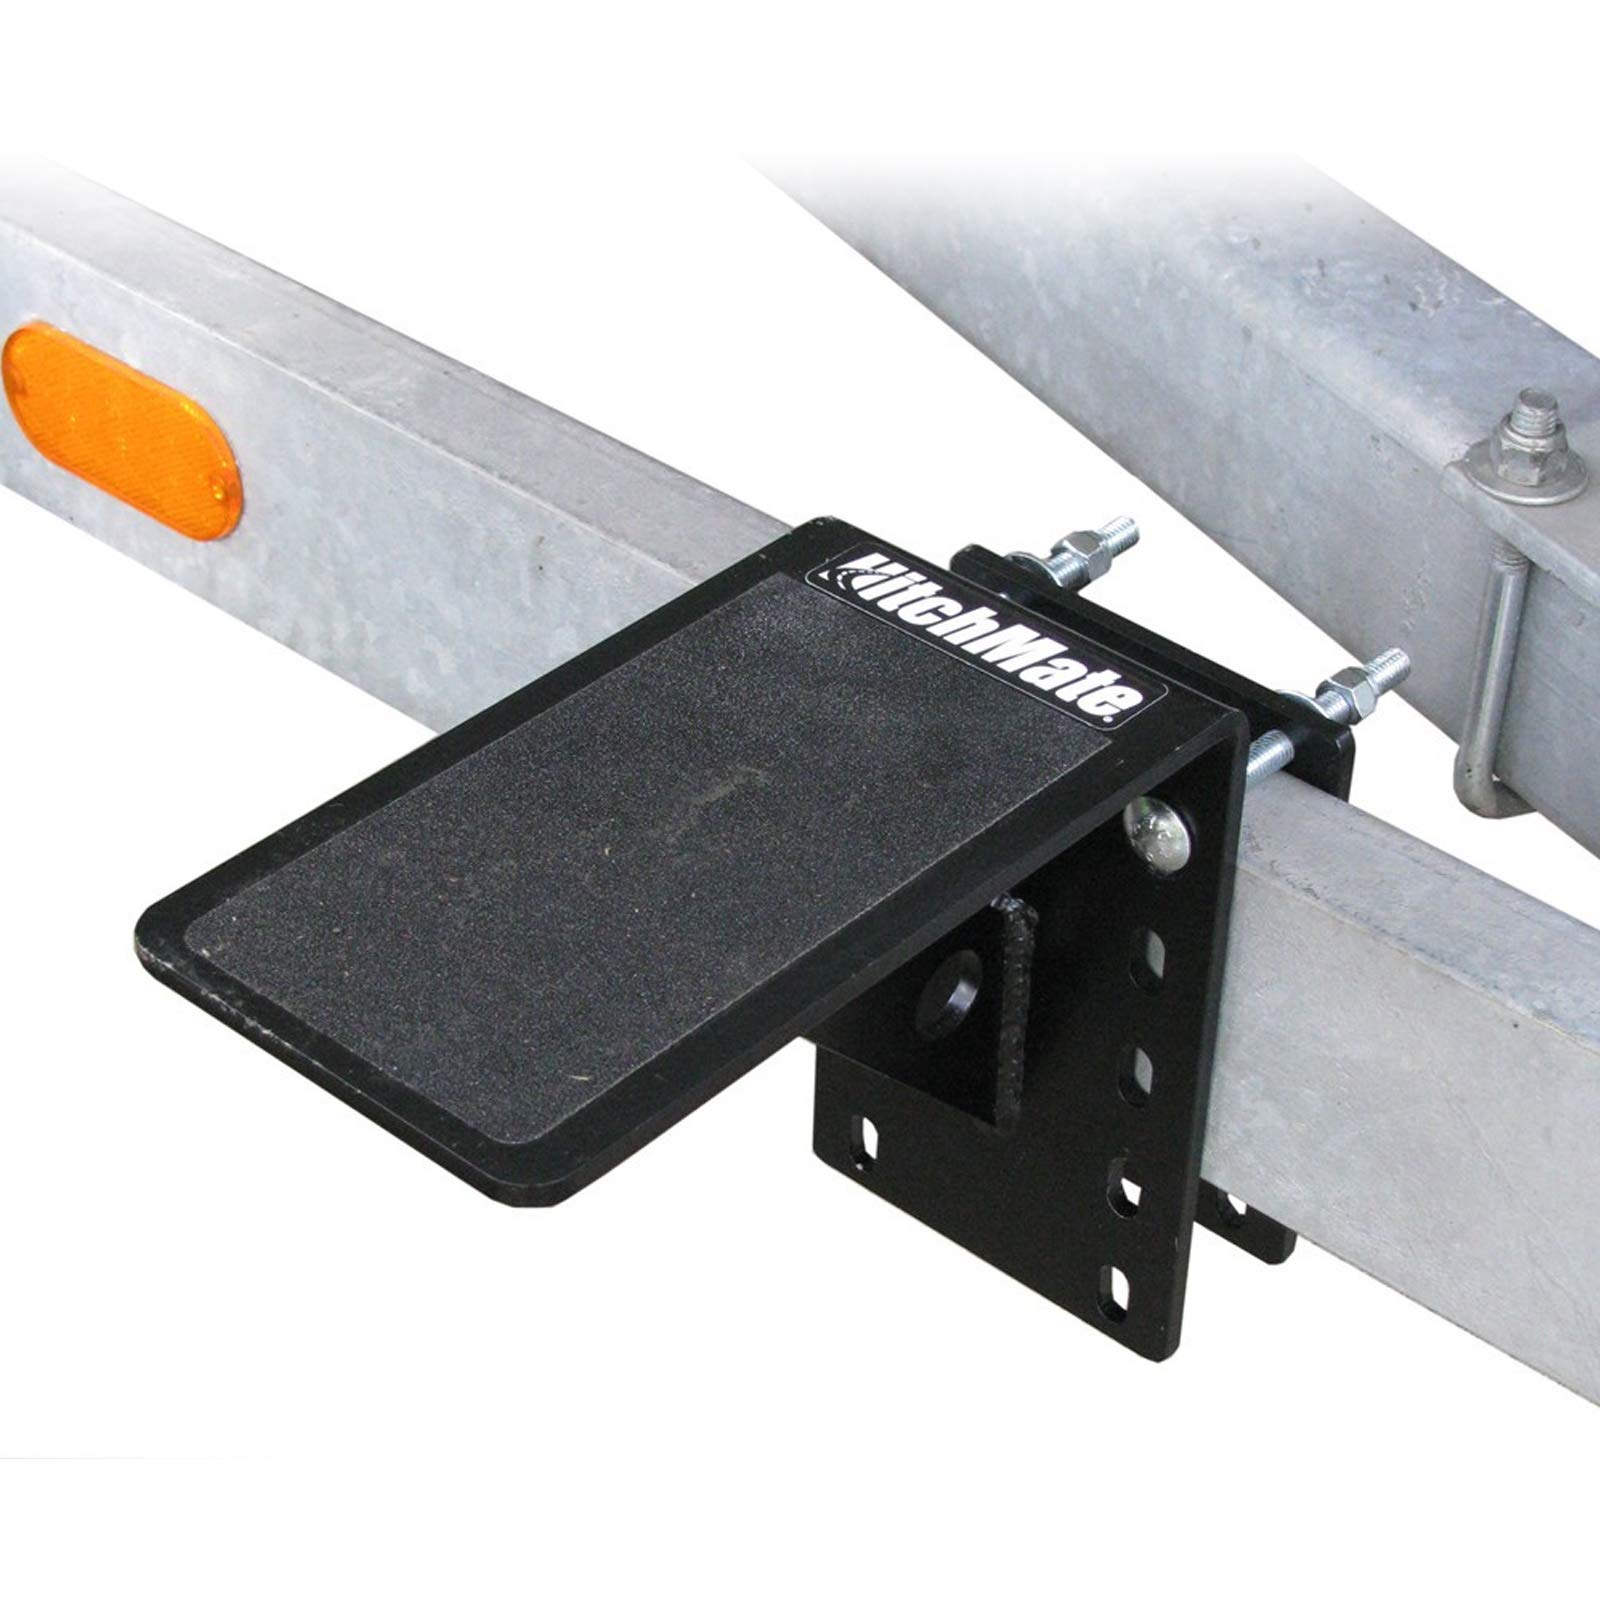 Heininger HitchMate 4036 5Inch Boat Trailer Step